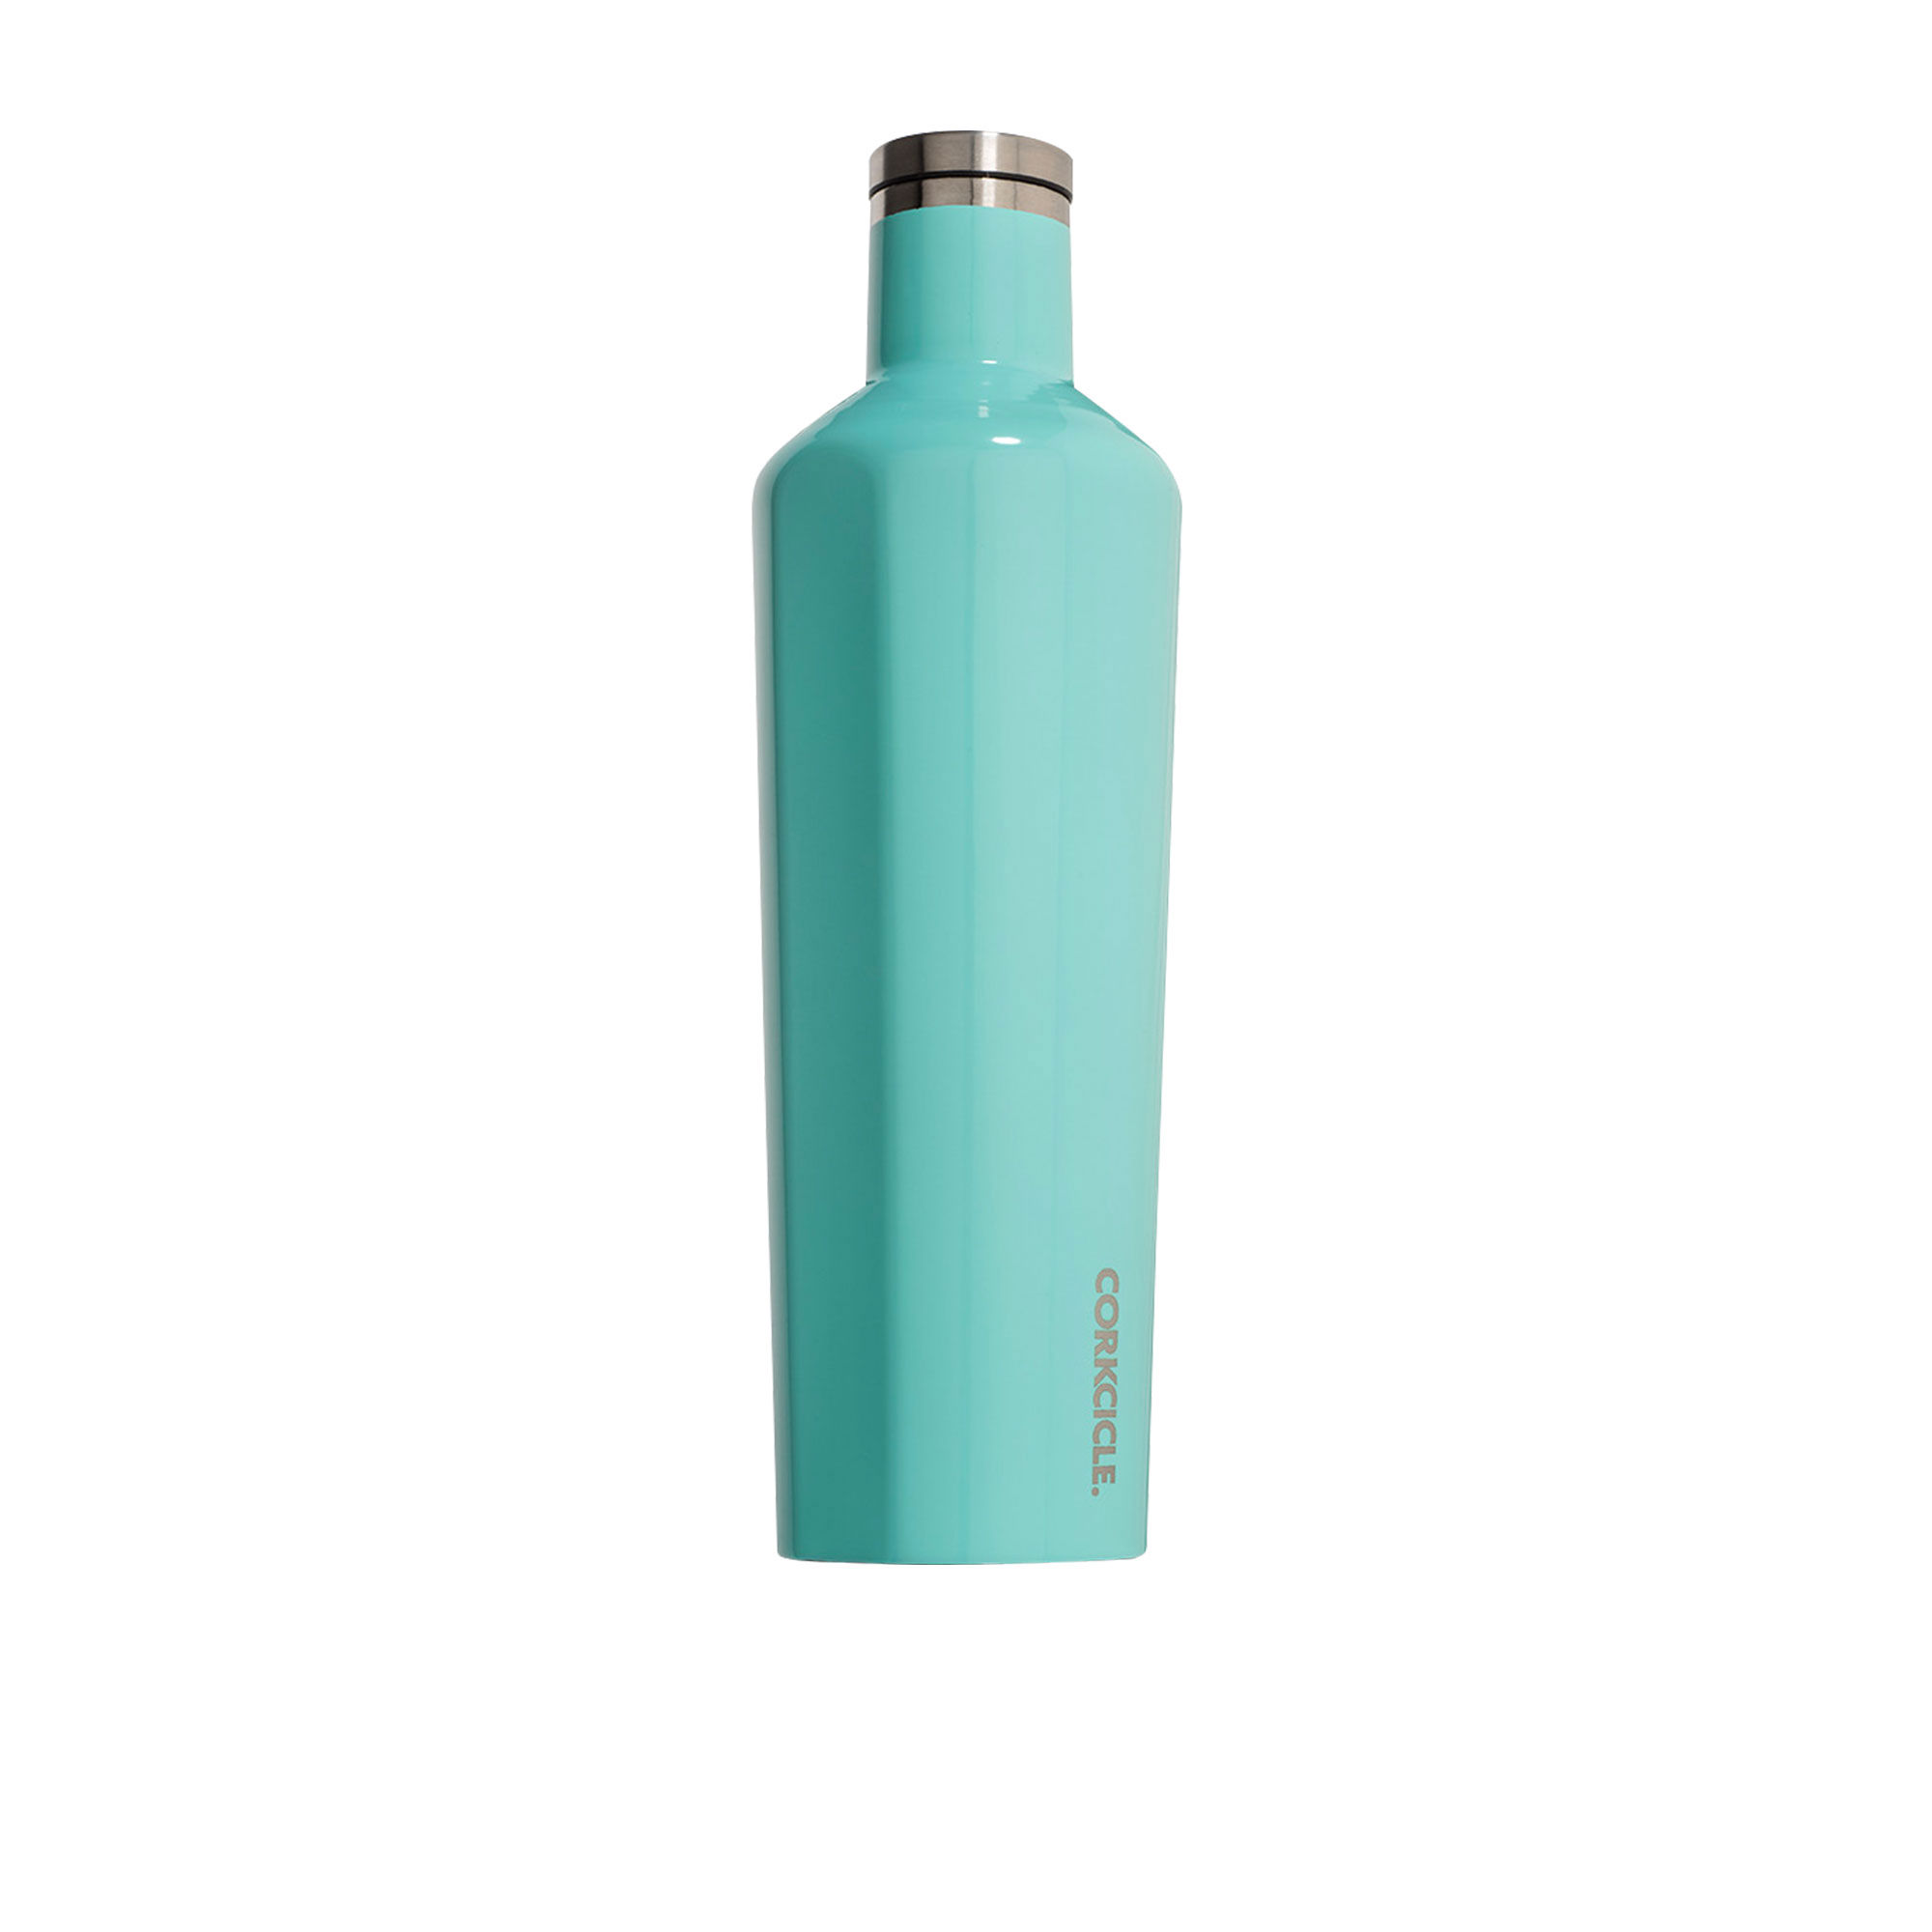 Corkcicle Classic Canteen Insulated Drink Bottle 750ml Turquoise